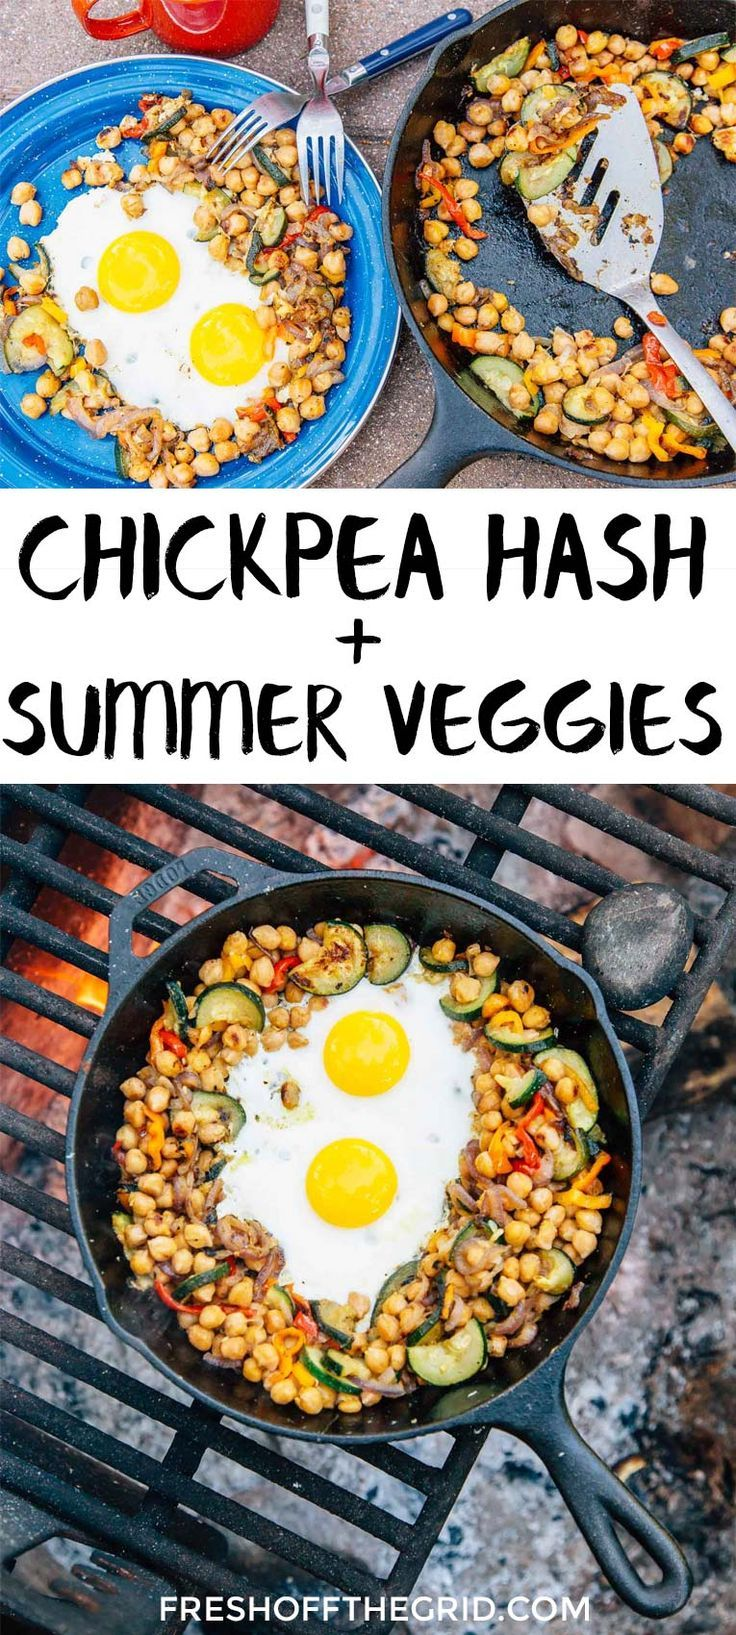 82 best vegetarian camping food images on pinterest camping foods a protein packed update to breakfast hash this chickpea and vegetable breakfast skillet is a forumfinder Gallery